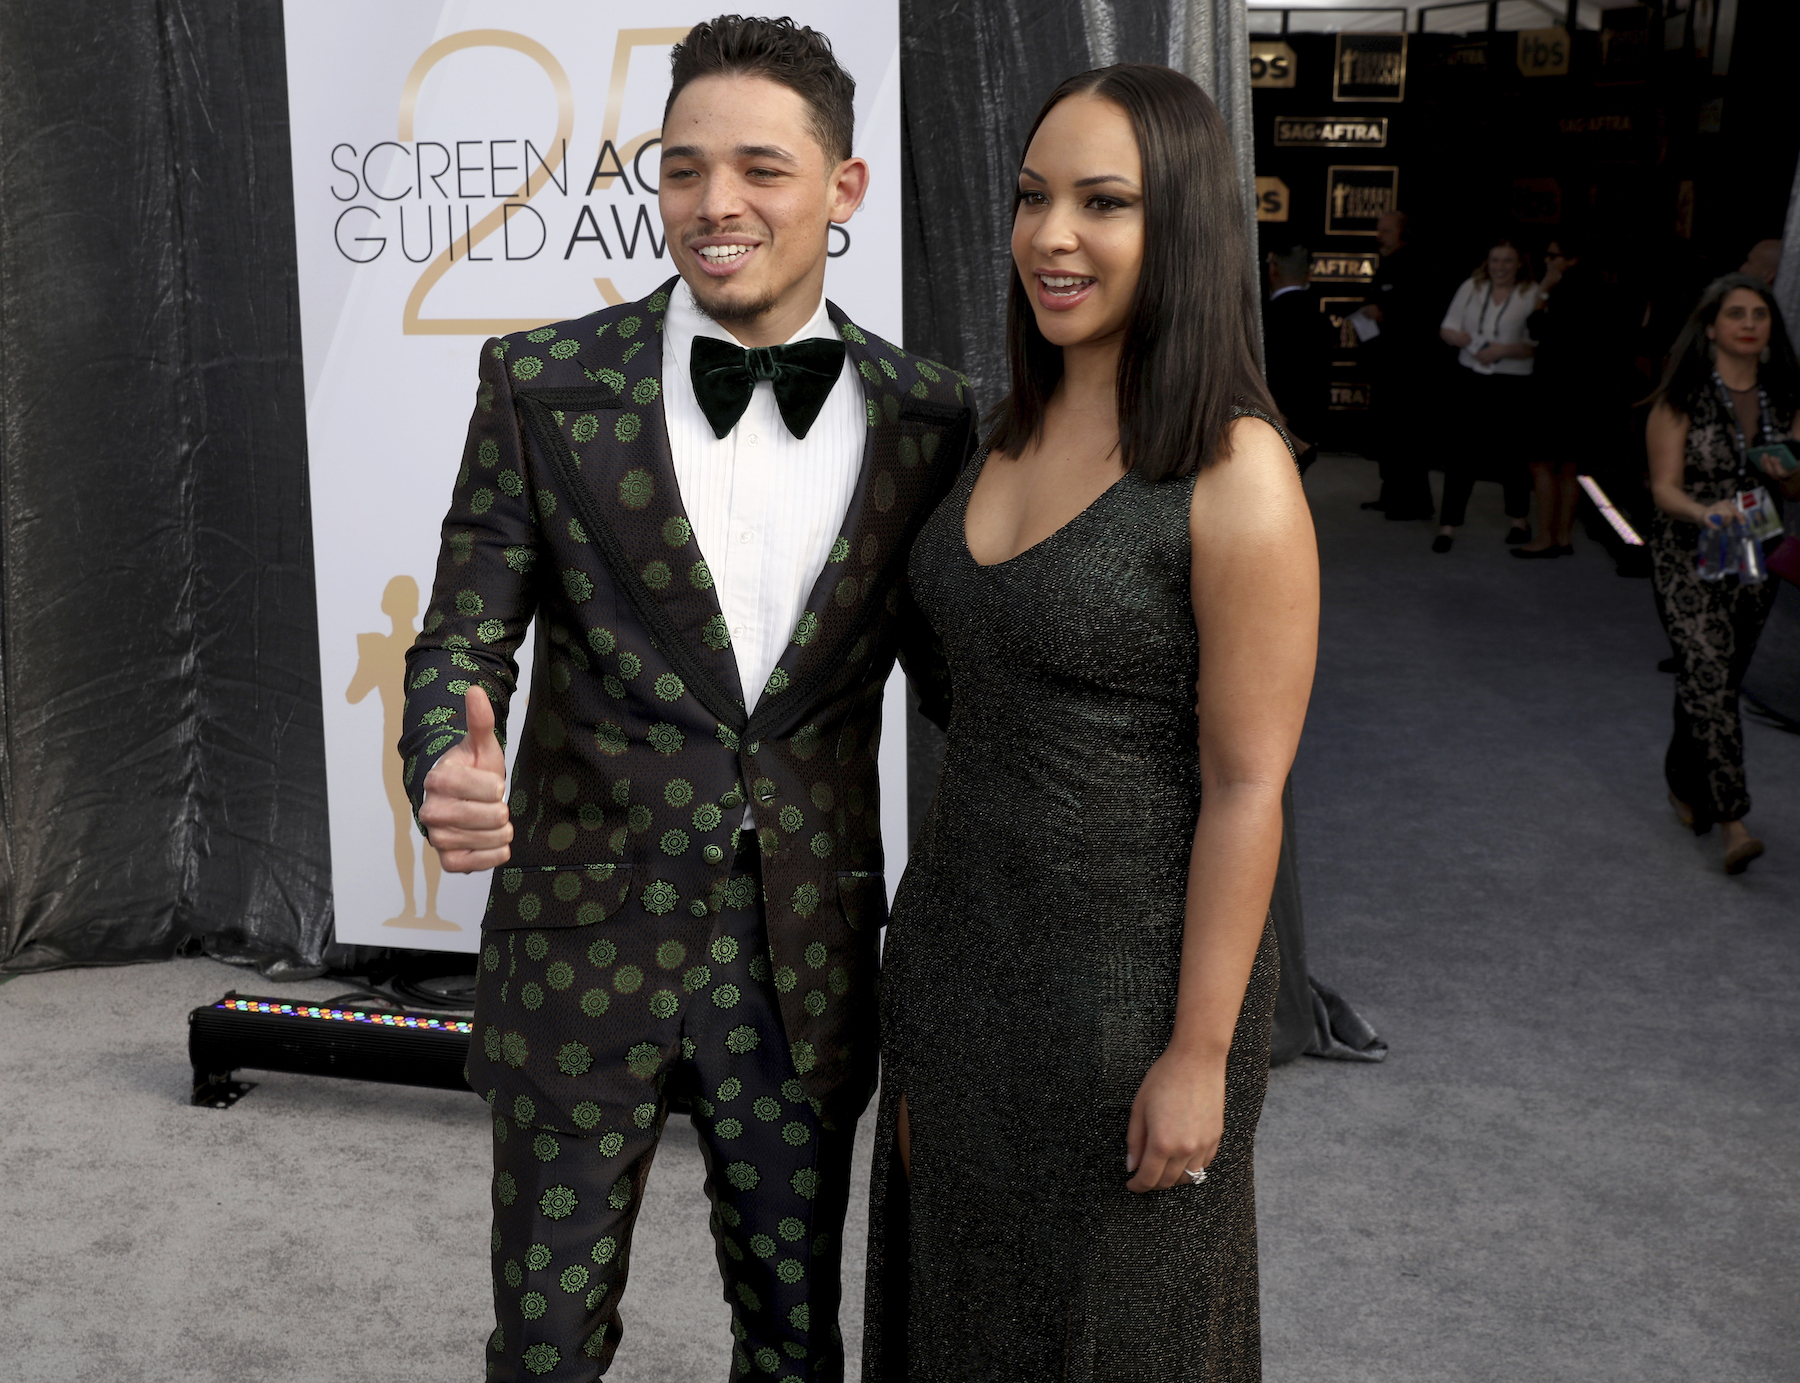 "<div class=""meta image-caption""><div class=""origin-logo origin-image ap""><span>AP</span></div><span class=""caption-text"">Anthony Ramos, left, and Jasmine Cephas Jones arrive at the 25th annual Screen Actors Guild Awards at the Shrine Auditorium & Expo Hall on Sunday, Jan. 27, 2019, in Los Angeles. (Matt Sayles/Invision/AP)</span></div>"